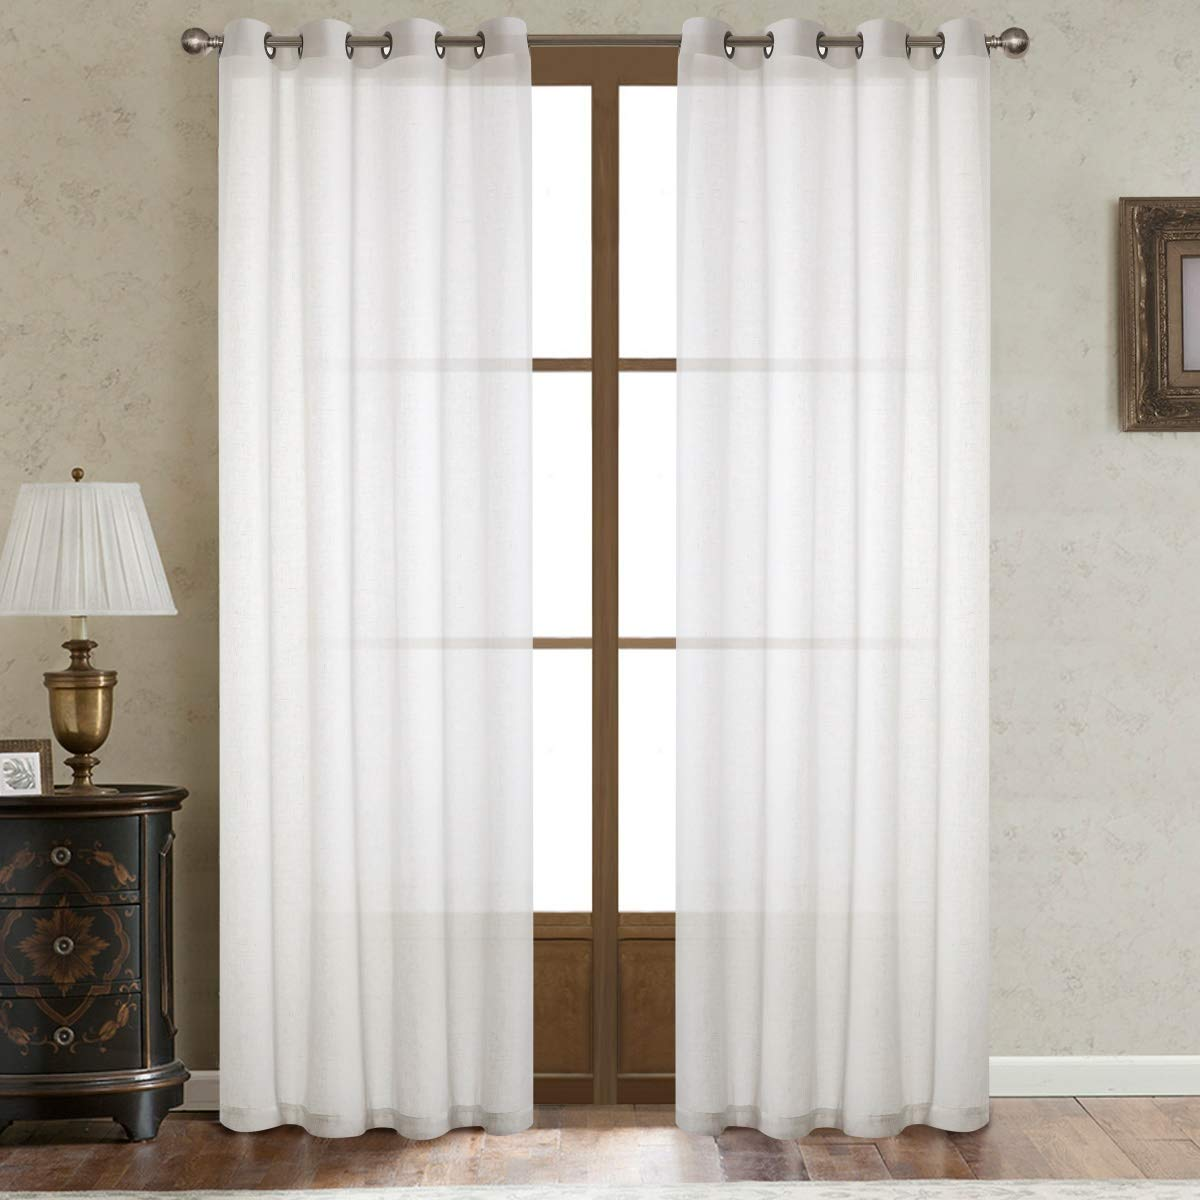 Dreamig Casa Natural Linen Sheer Curtains for Bedroom,Solid Semi Sheer Grommet Top Two Panels for Living Room 2 Panels, 52W x 96L